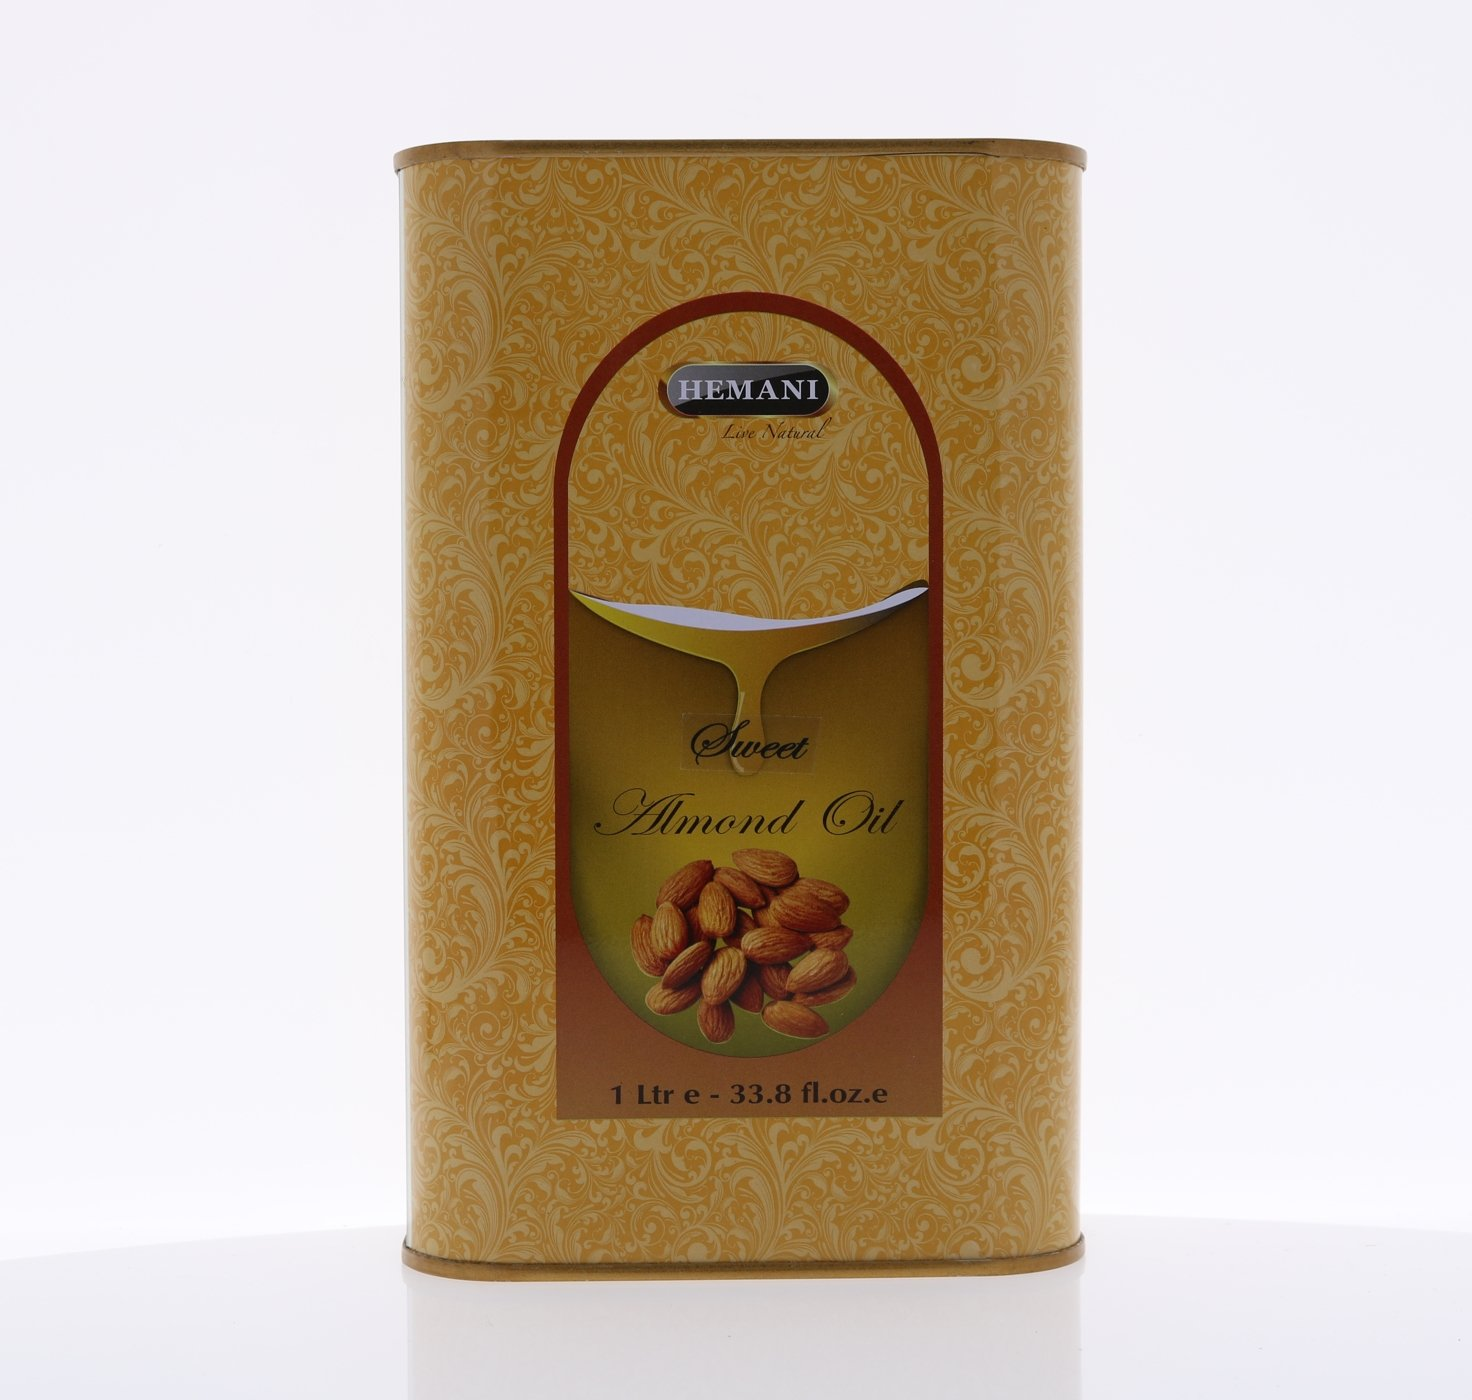 Hemani 100% Natural Sweet Almond Oil - Cold Pressed - 1 Liter (1000ml) by Hemani (Image #1)